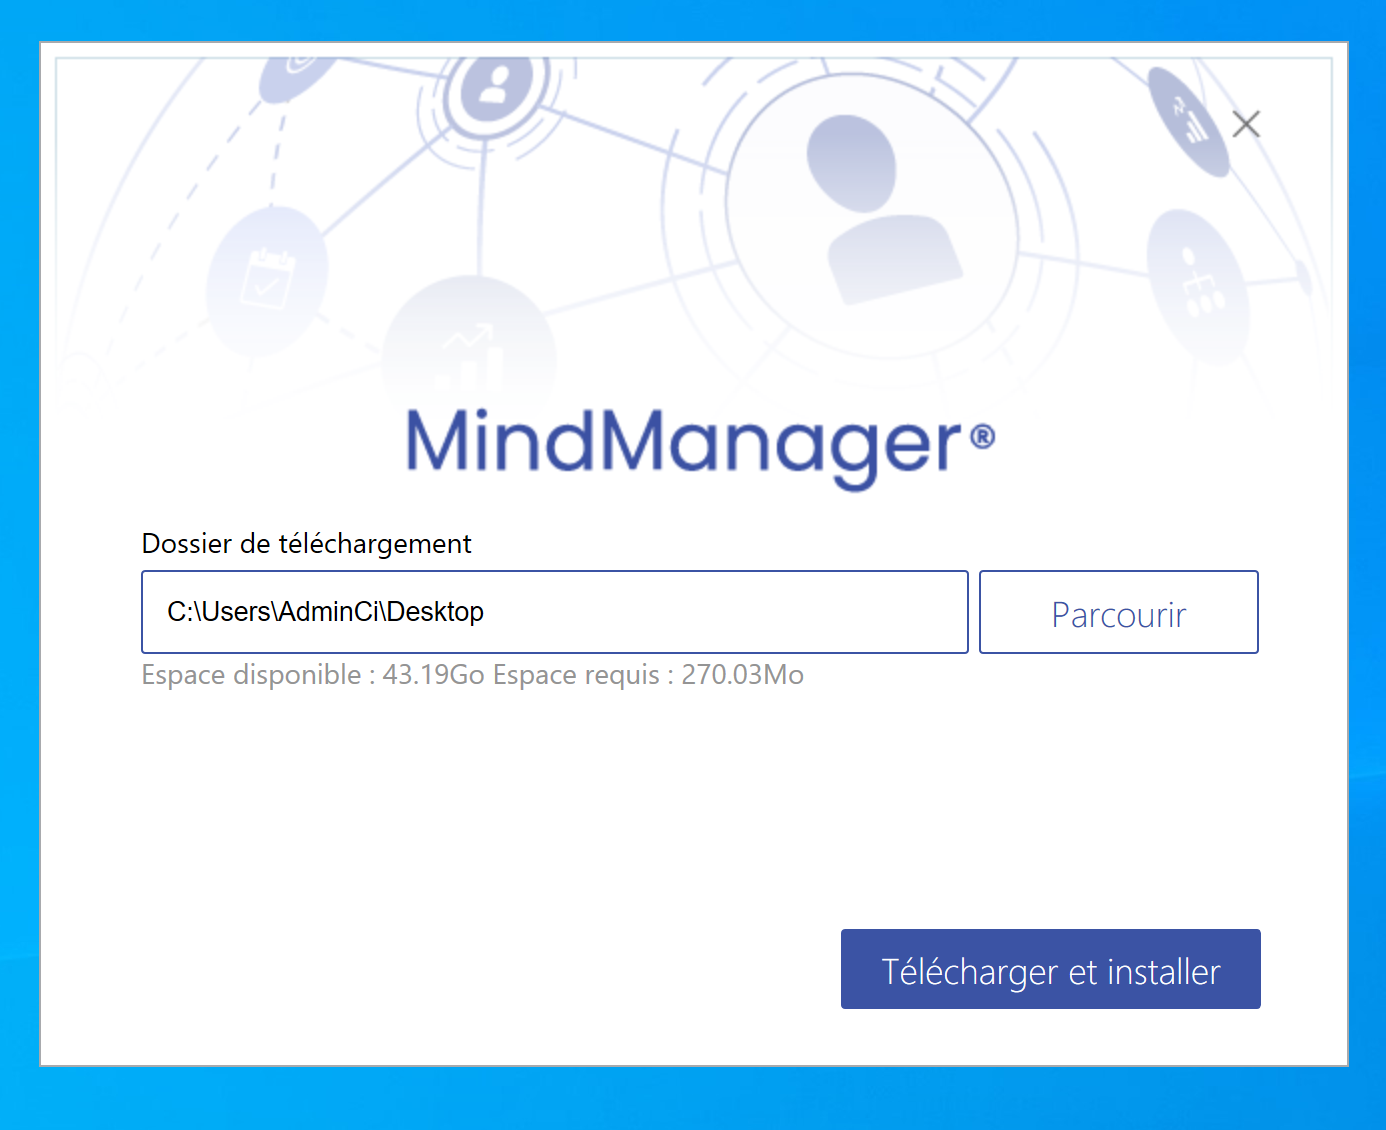 mindmanager2021_win64_00007.png